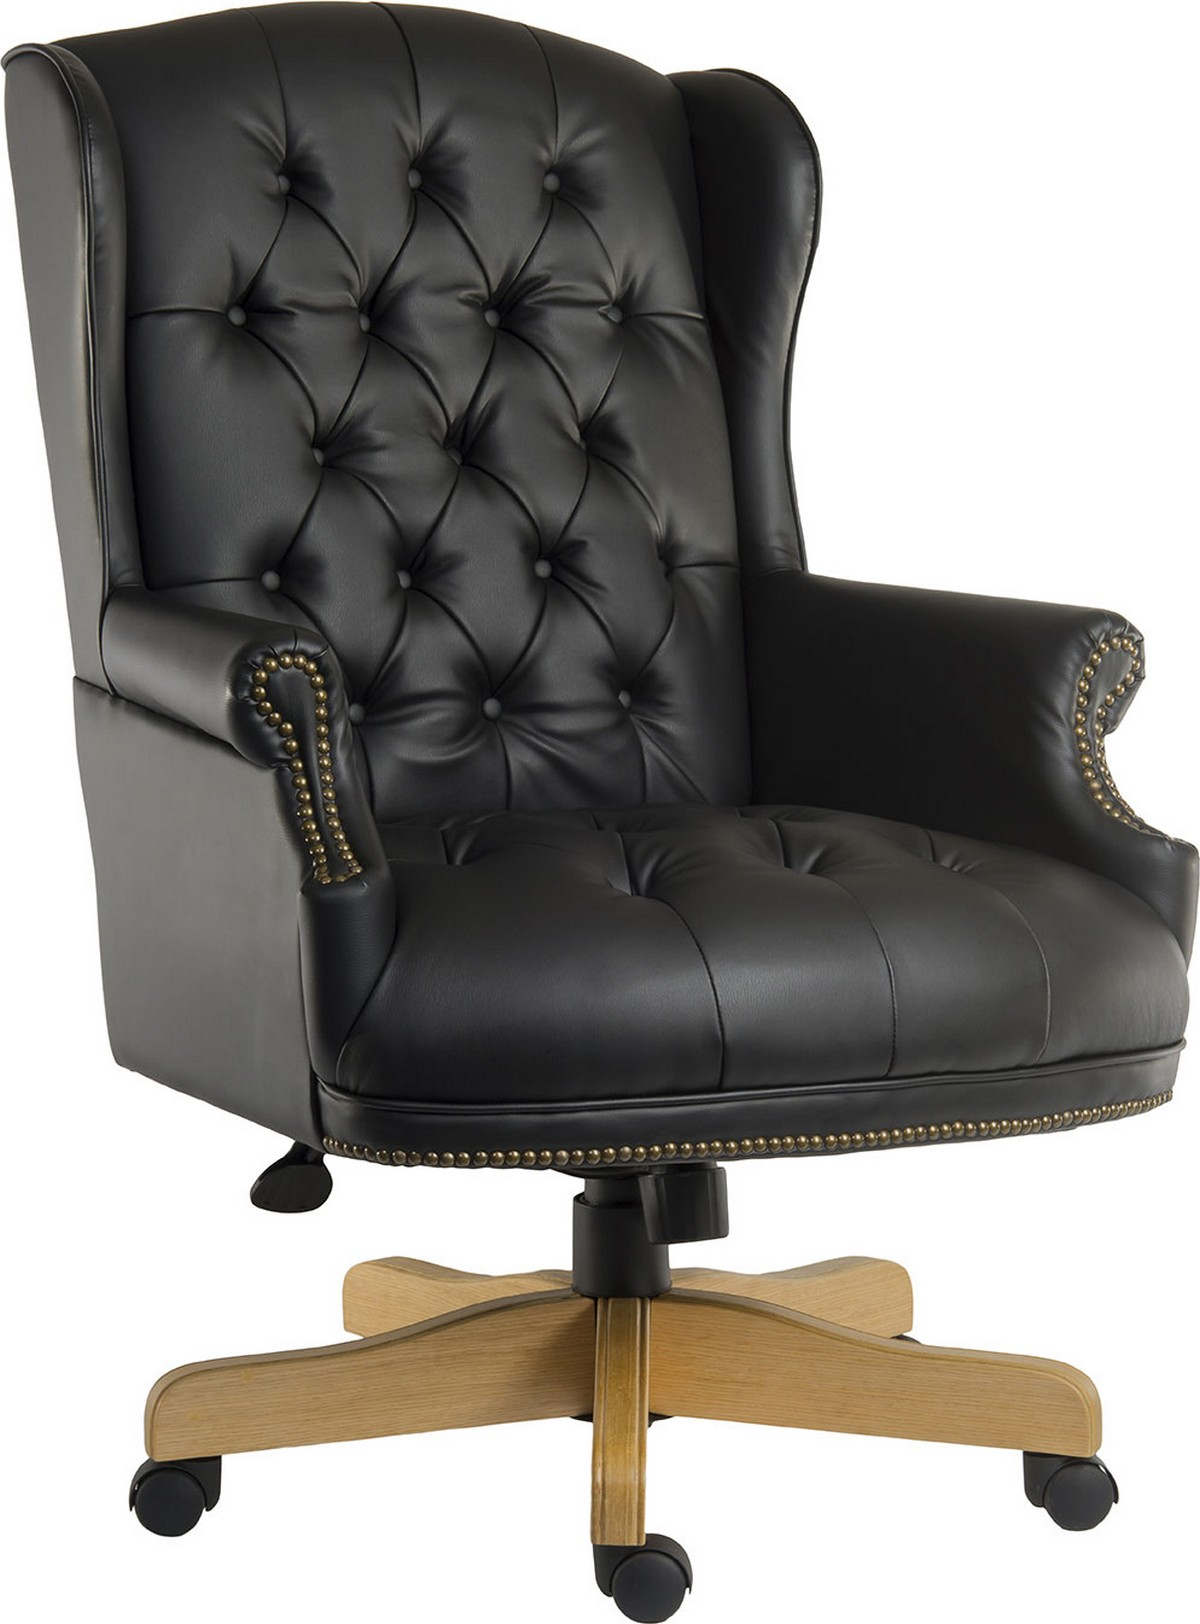 Chairman Executive Black Office Chair